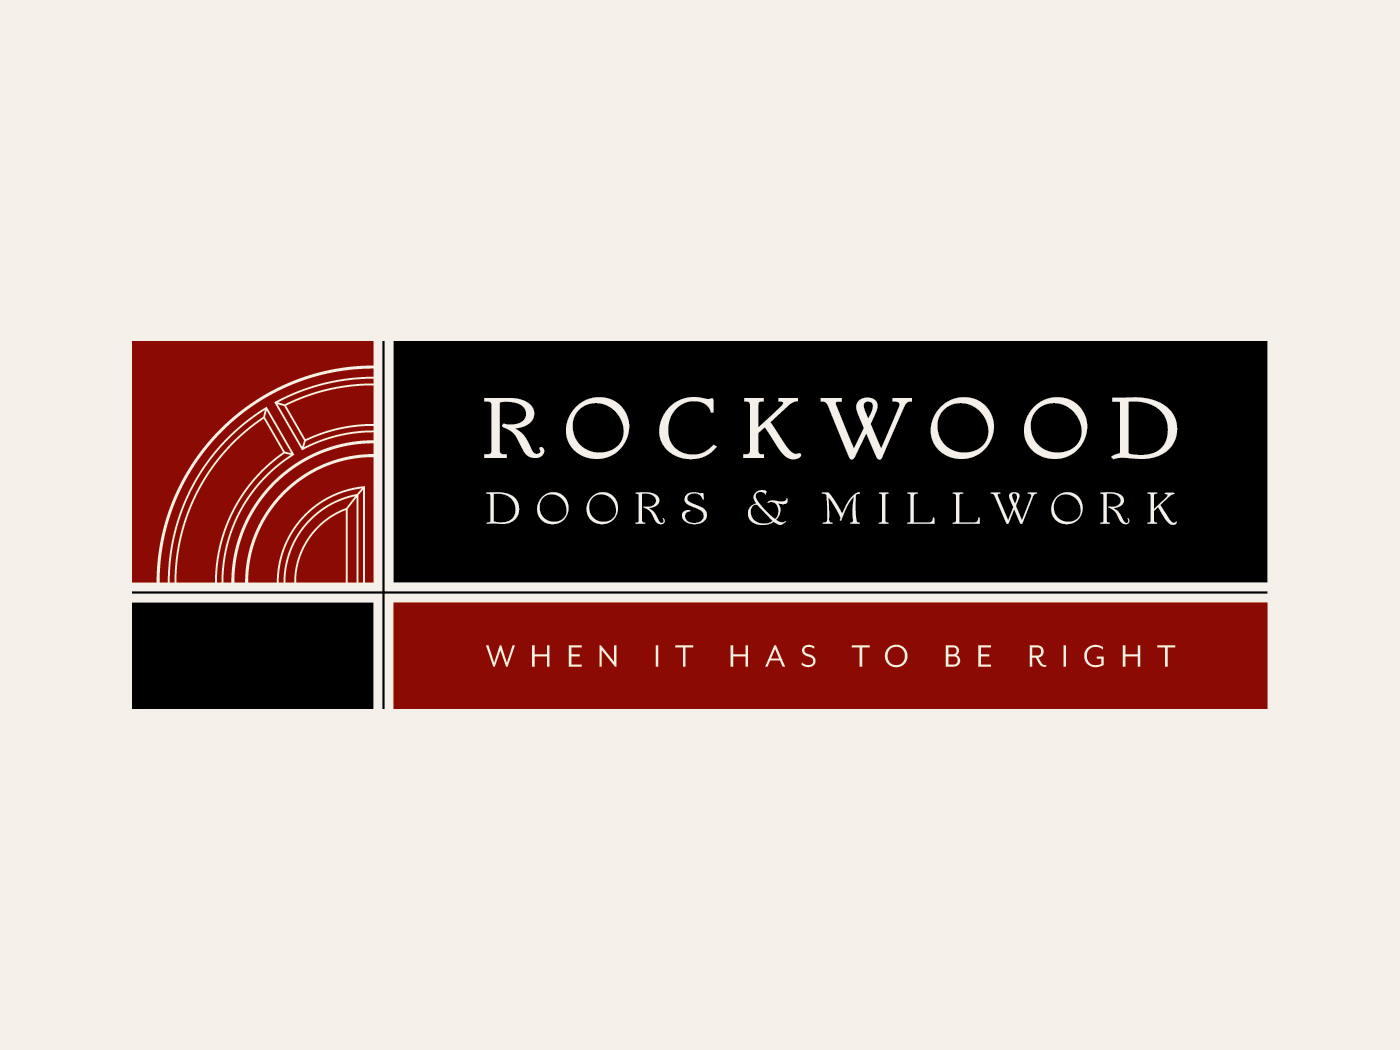 Rockwood Doors and Millwork